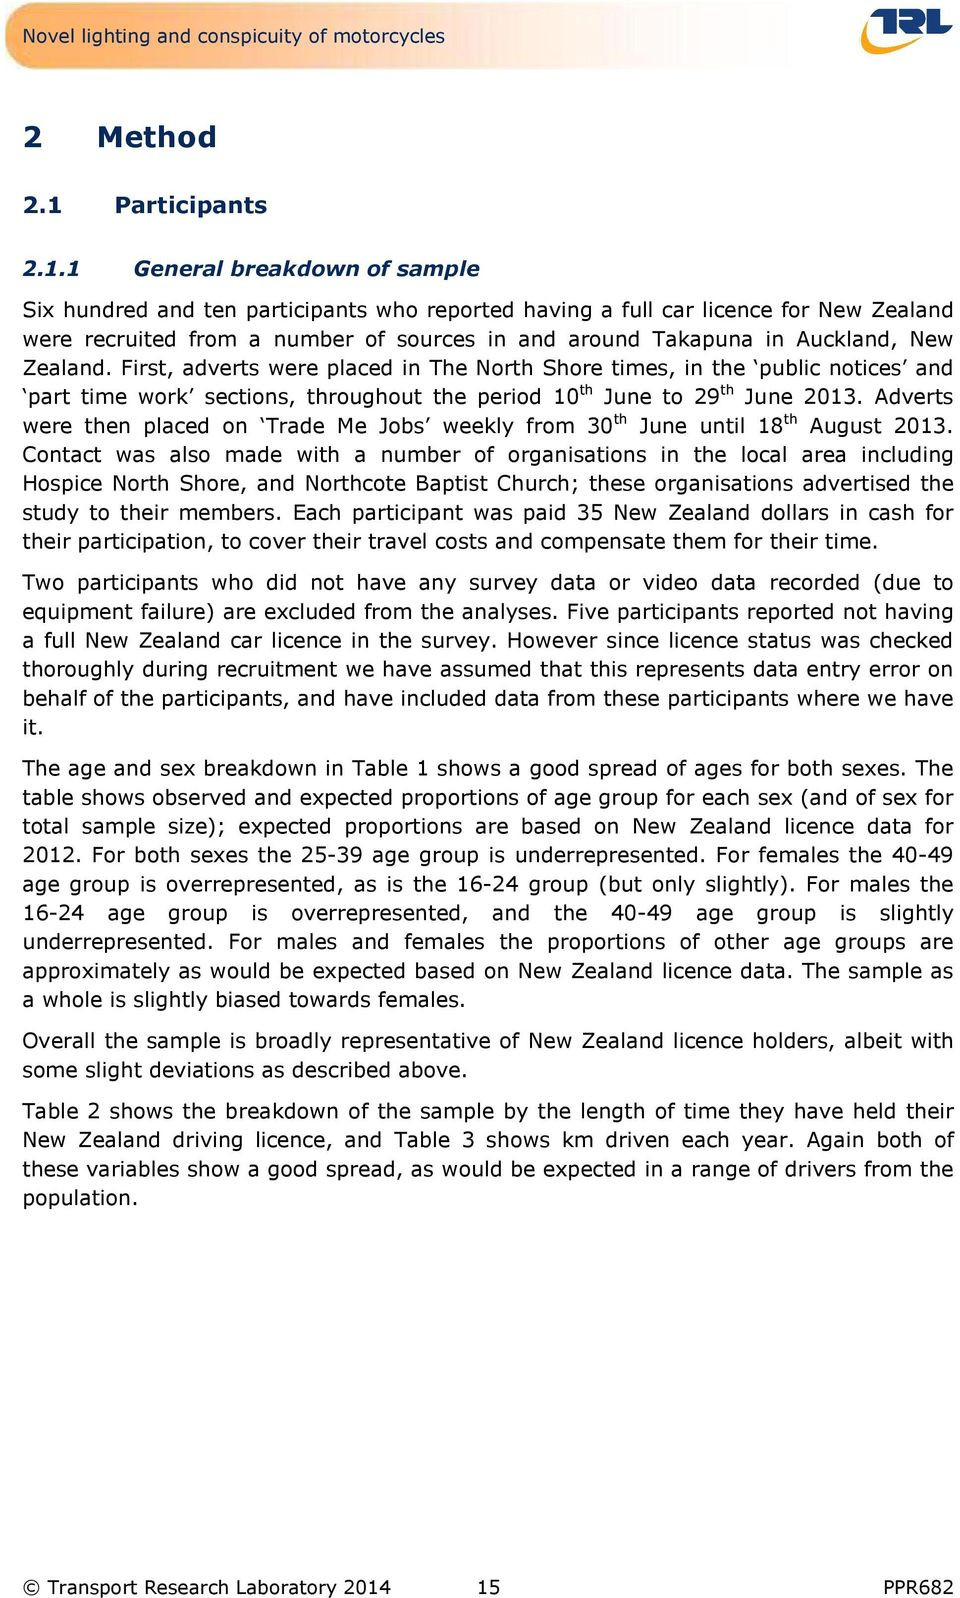 1 General breakdown of sample Six hundred and ten participants who reported having a full car licence for New Zealand were recruited from a number of sources in and around Takapuna in Auckland, New